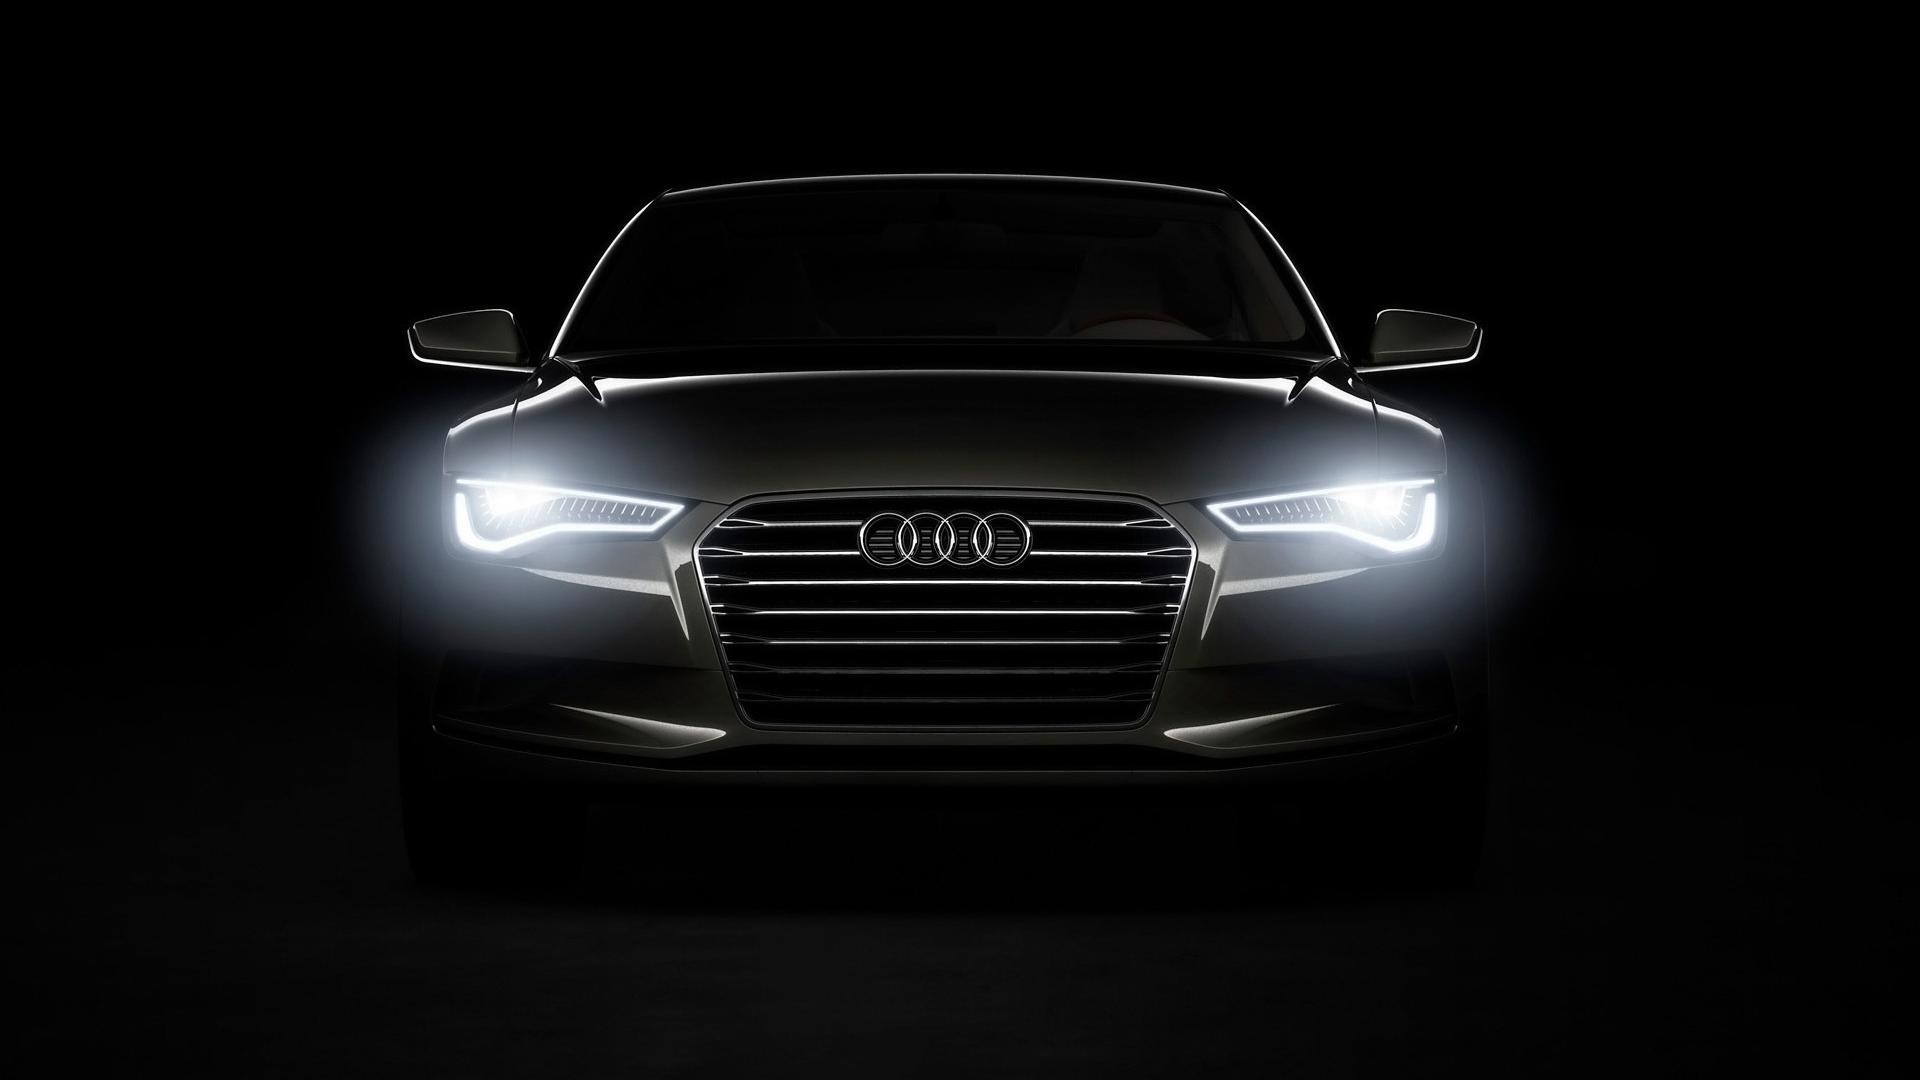 Audi Headlights HD Desktop wallpaper, images and photos